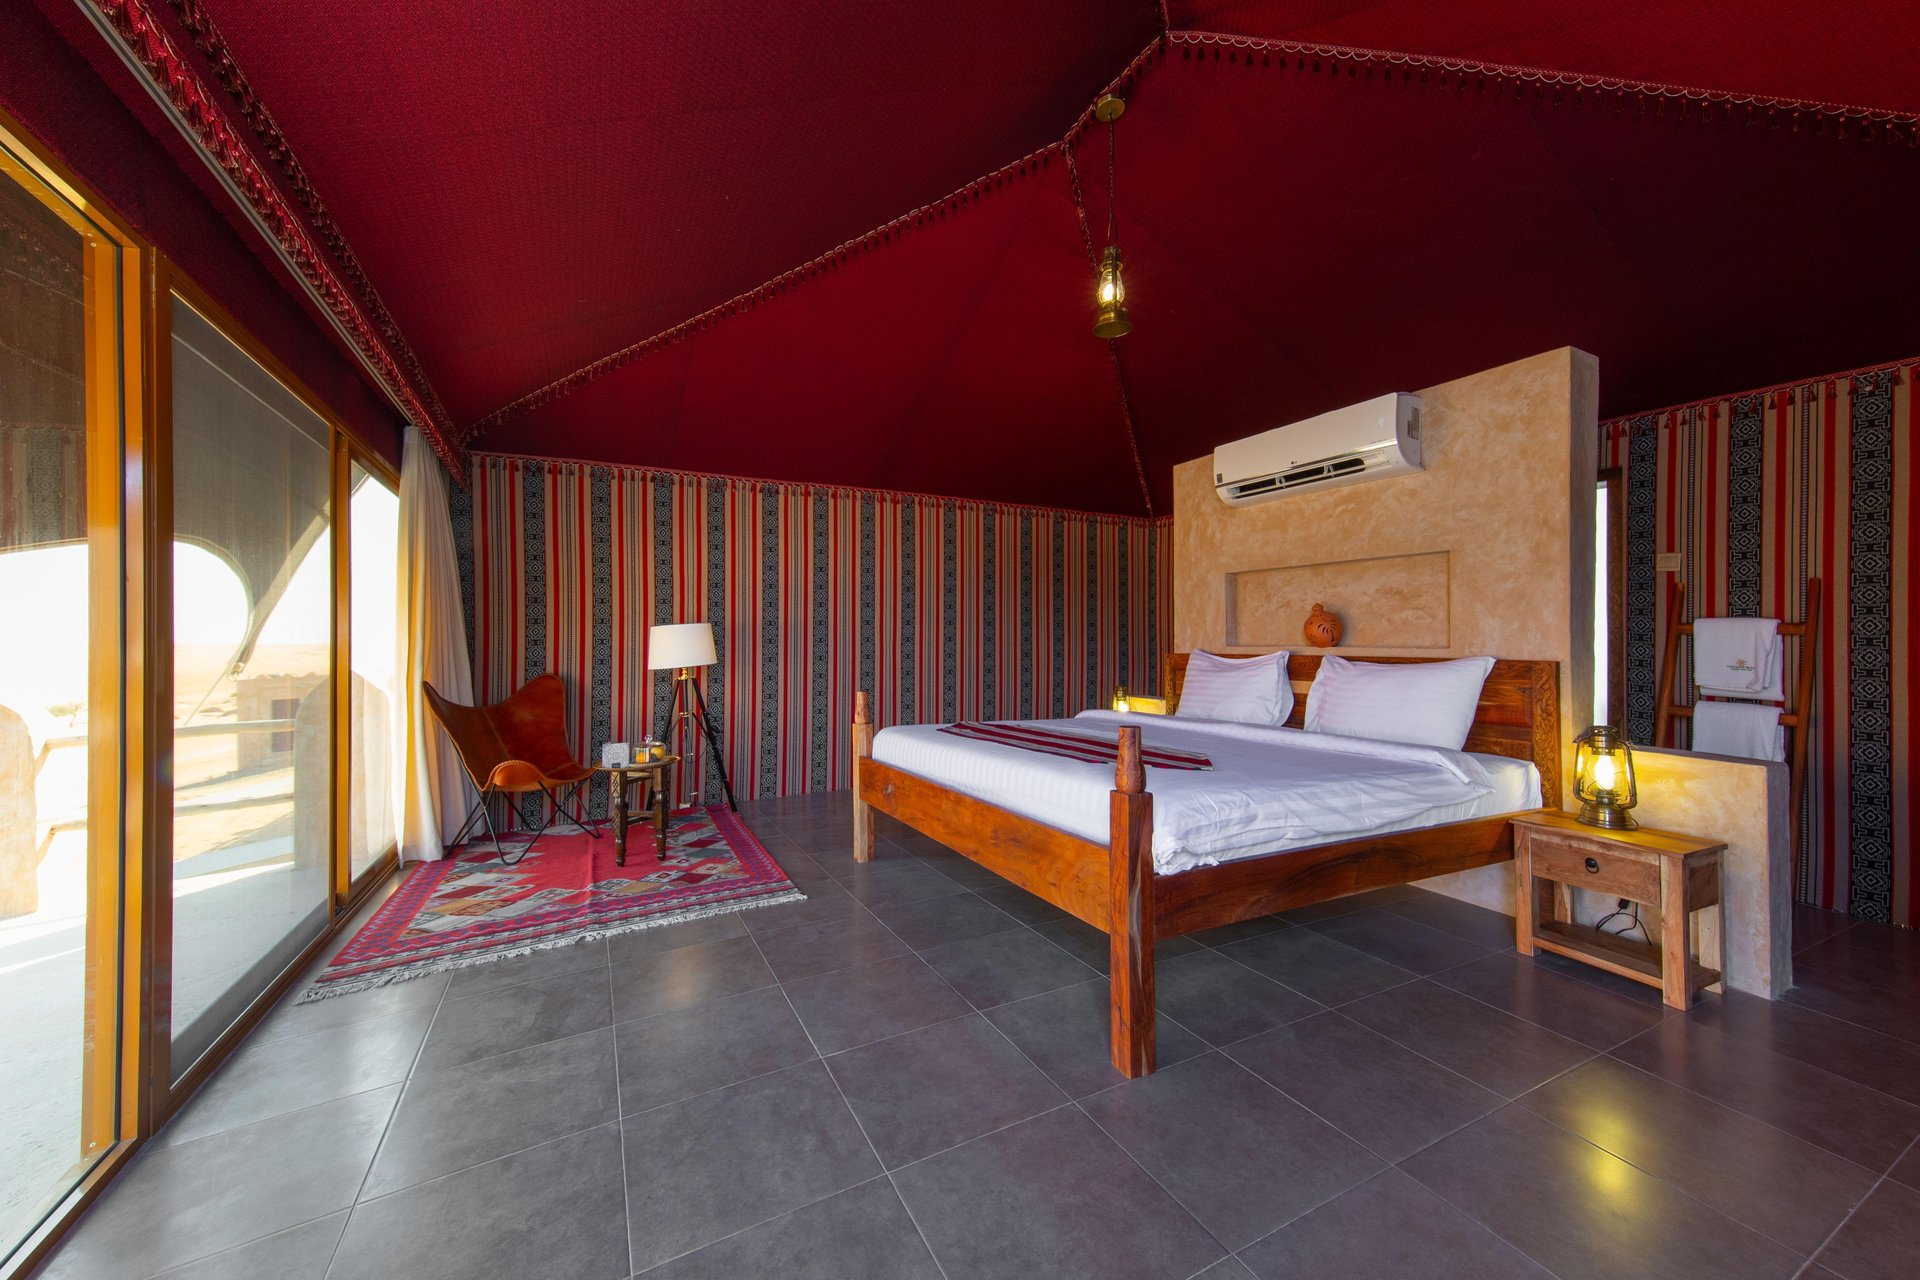 1000 Nights Camp Sheikh deluxe tent - Wahiba Sands